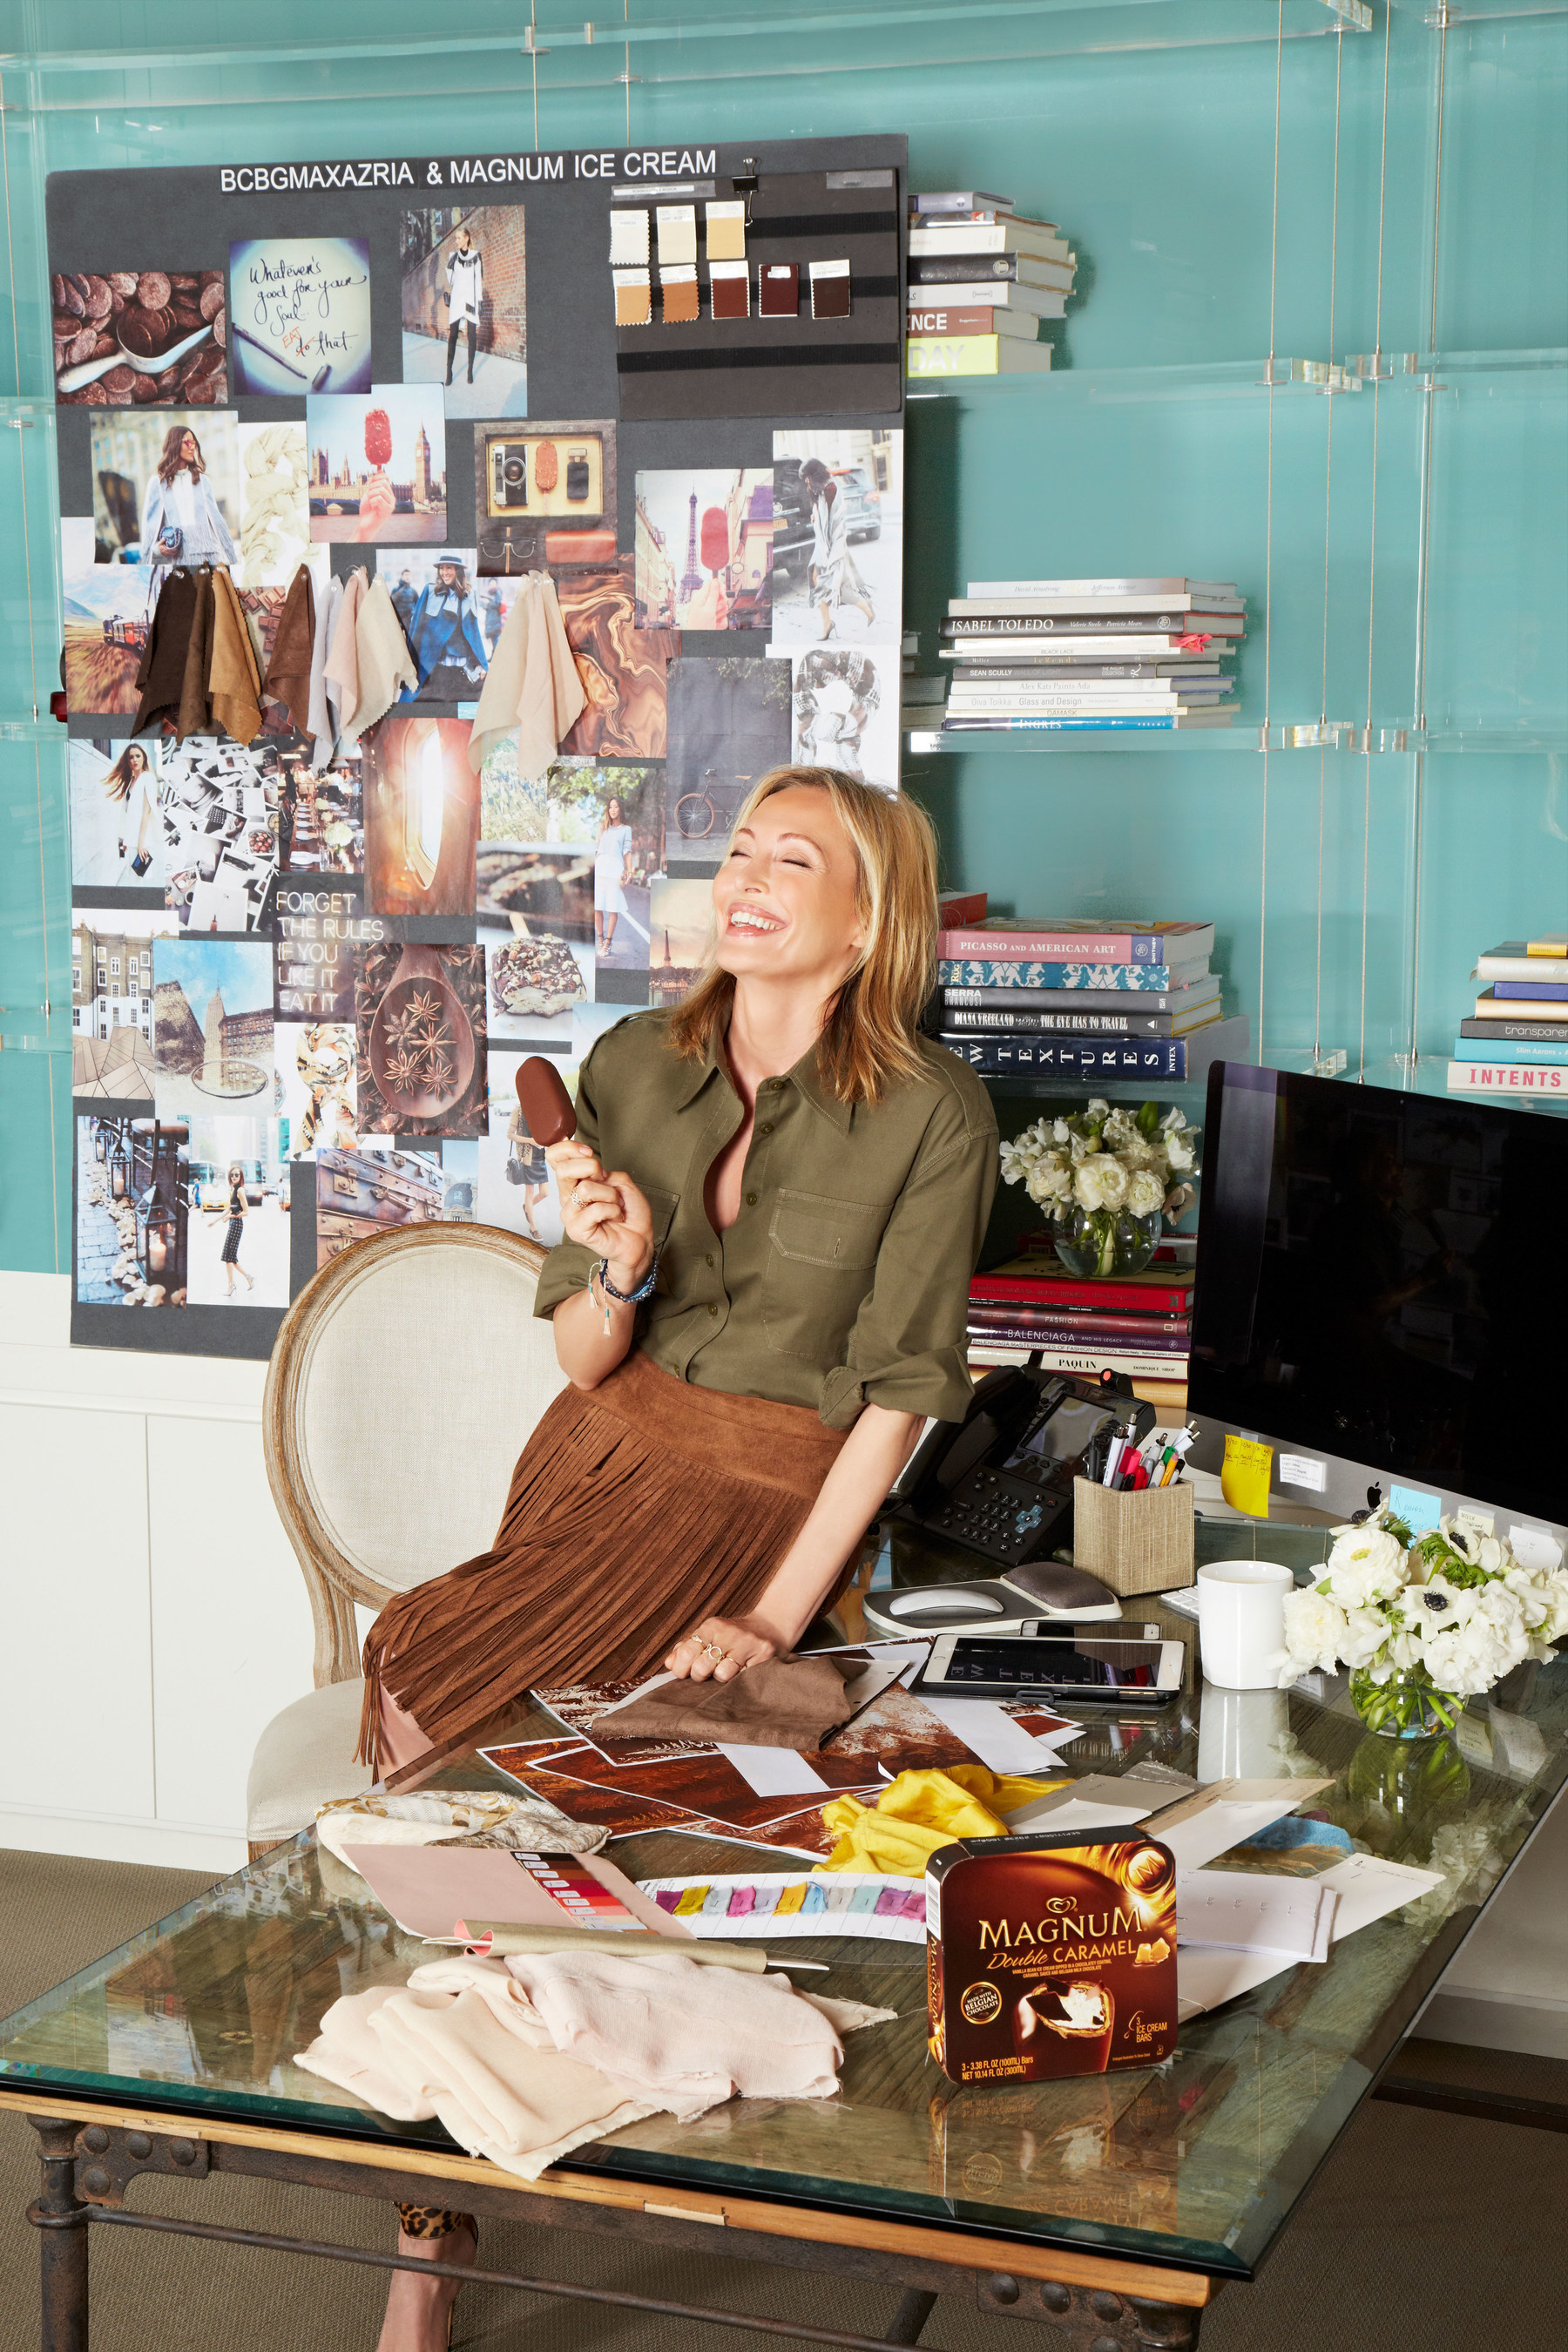 Lubov Azria, chief creative officer of BCBGMAXAZRIA, surrounded by the inspiration for the BCBGMAXAZRIA for MAGNUM Belgian Chocolate Wrap, an innovative accessory infused with an aroma inspired by MAGNUM Belgian Chocolate.